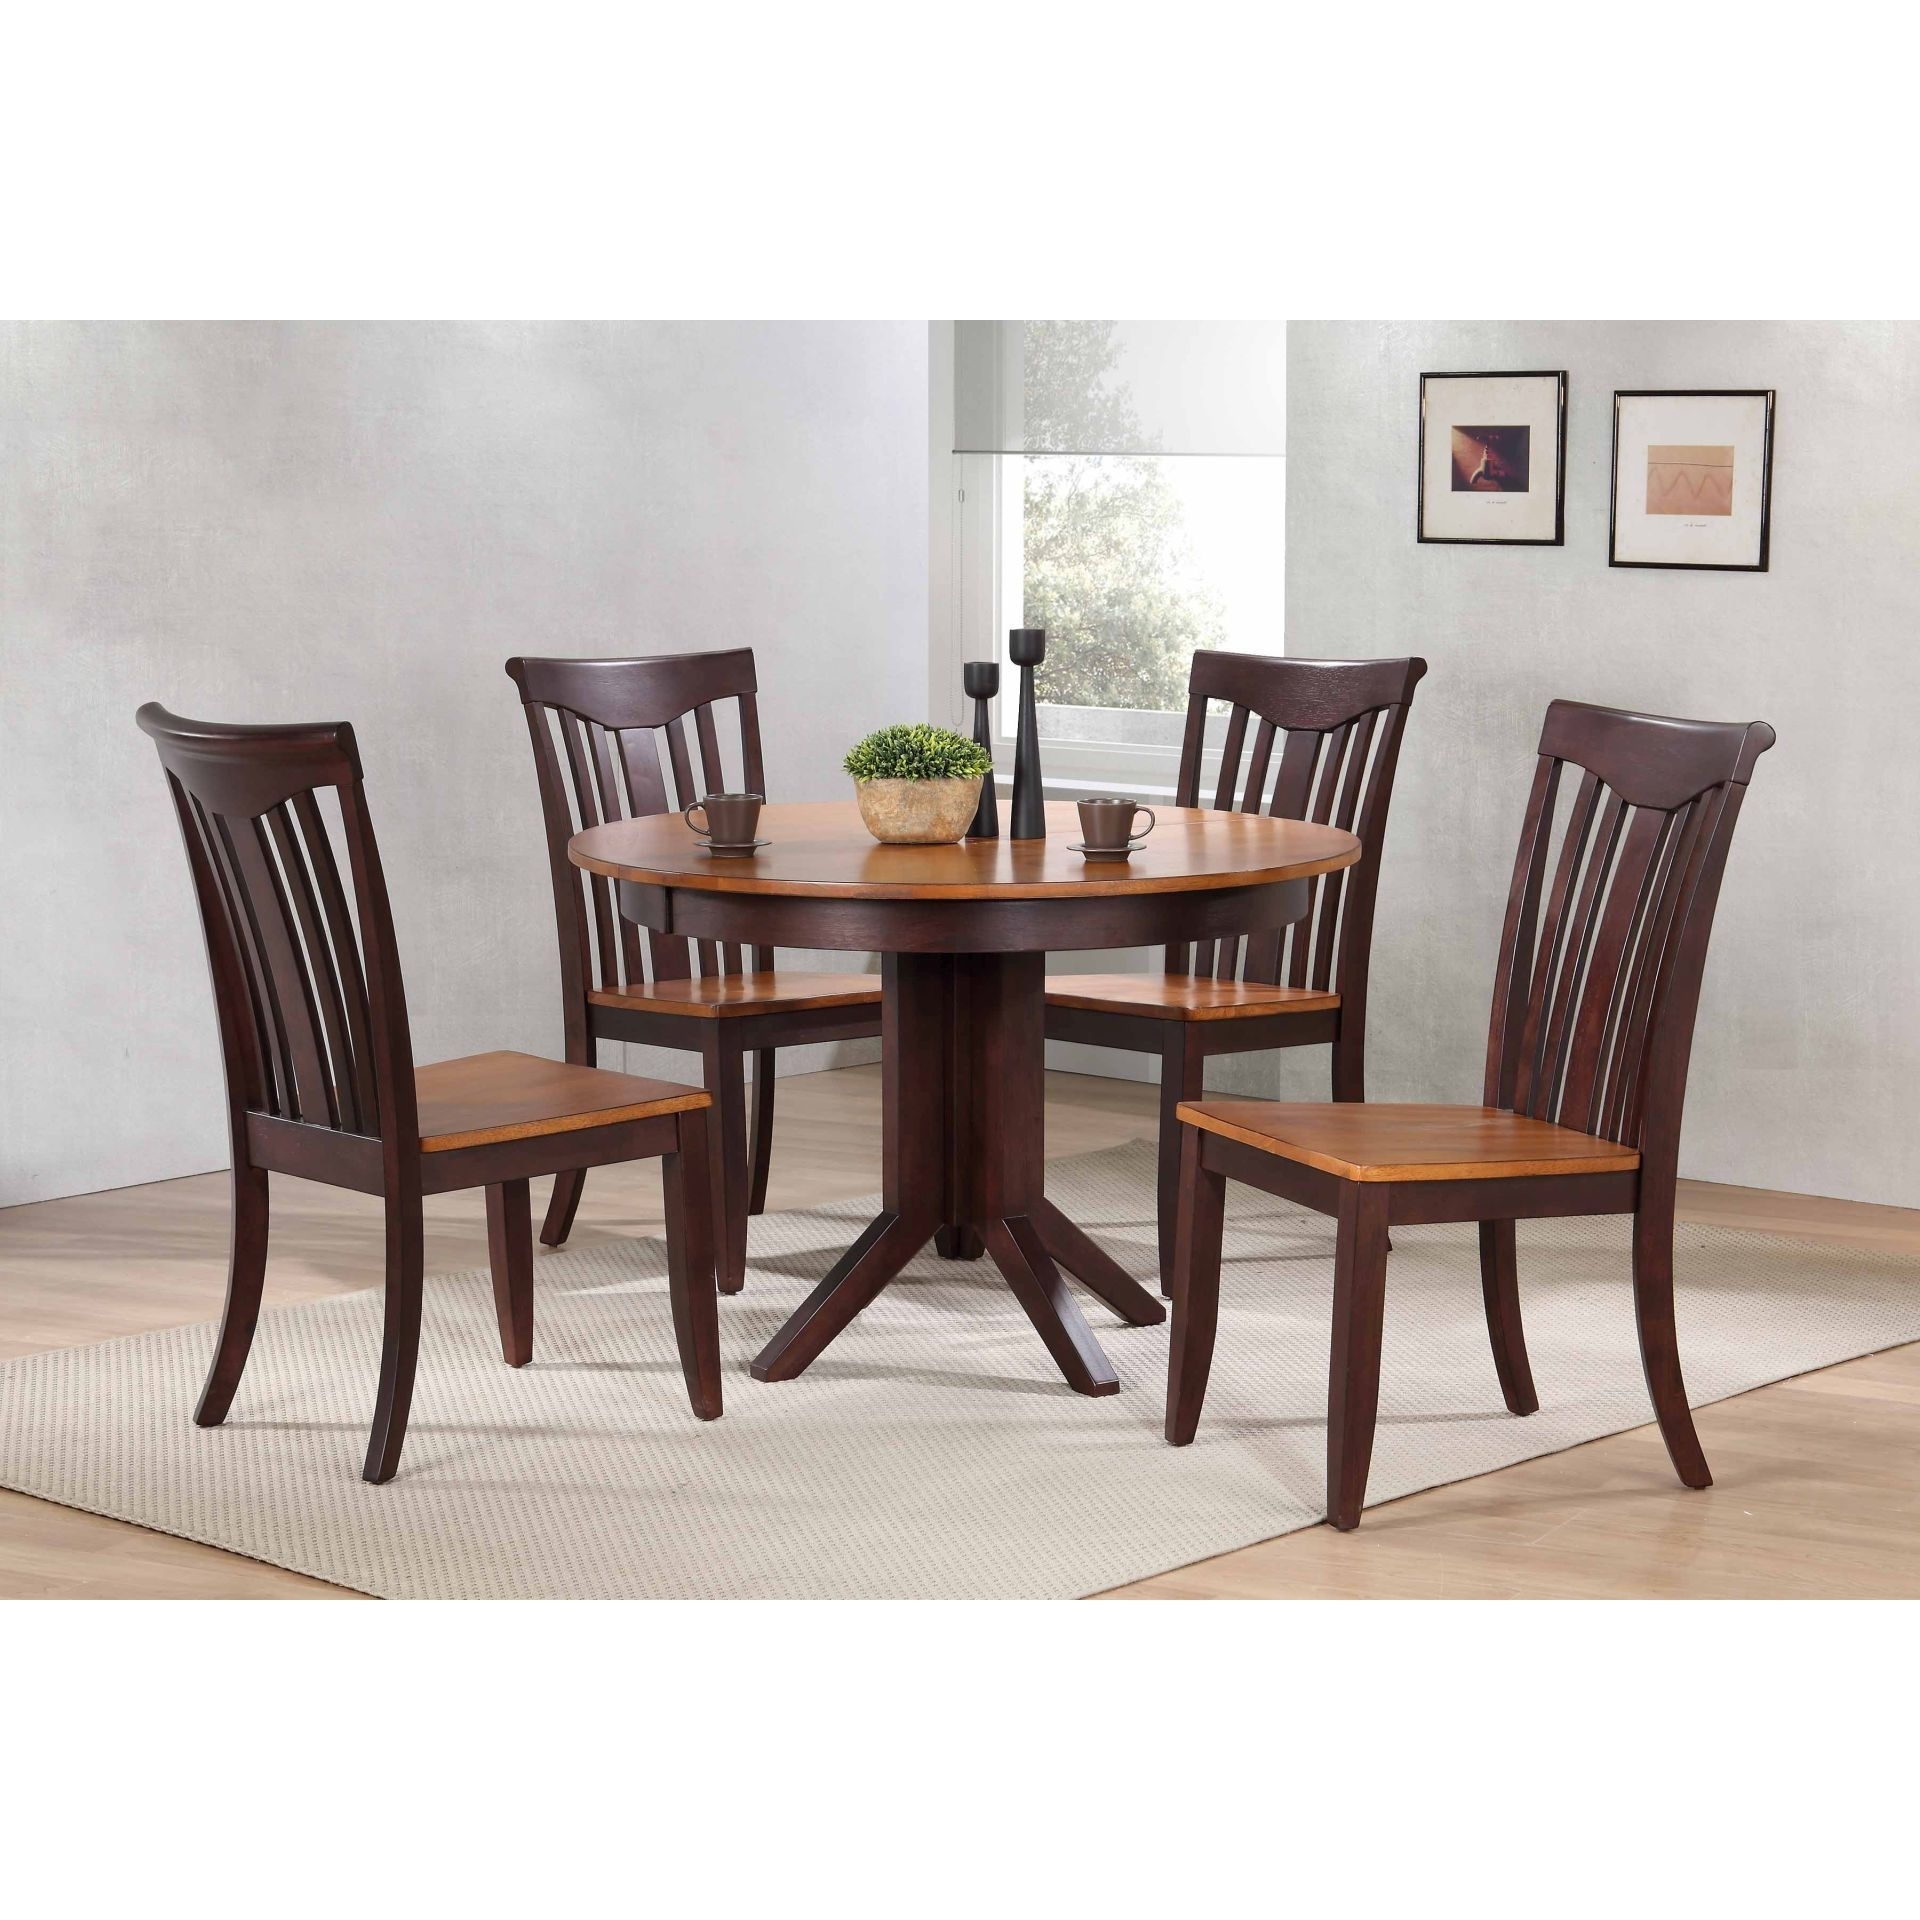 """Caden 6 Piece Dining Sets With Upholstered Side Chair Throughout Fashionable Shop Iconic Furniture Company 45""""x45""""x63"""" Contemporary Whiskey/mocha (View 8 of 25)"""